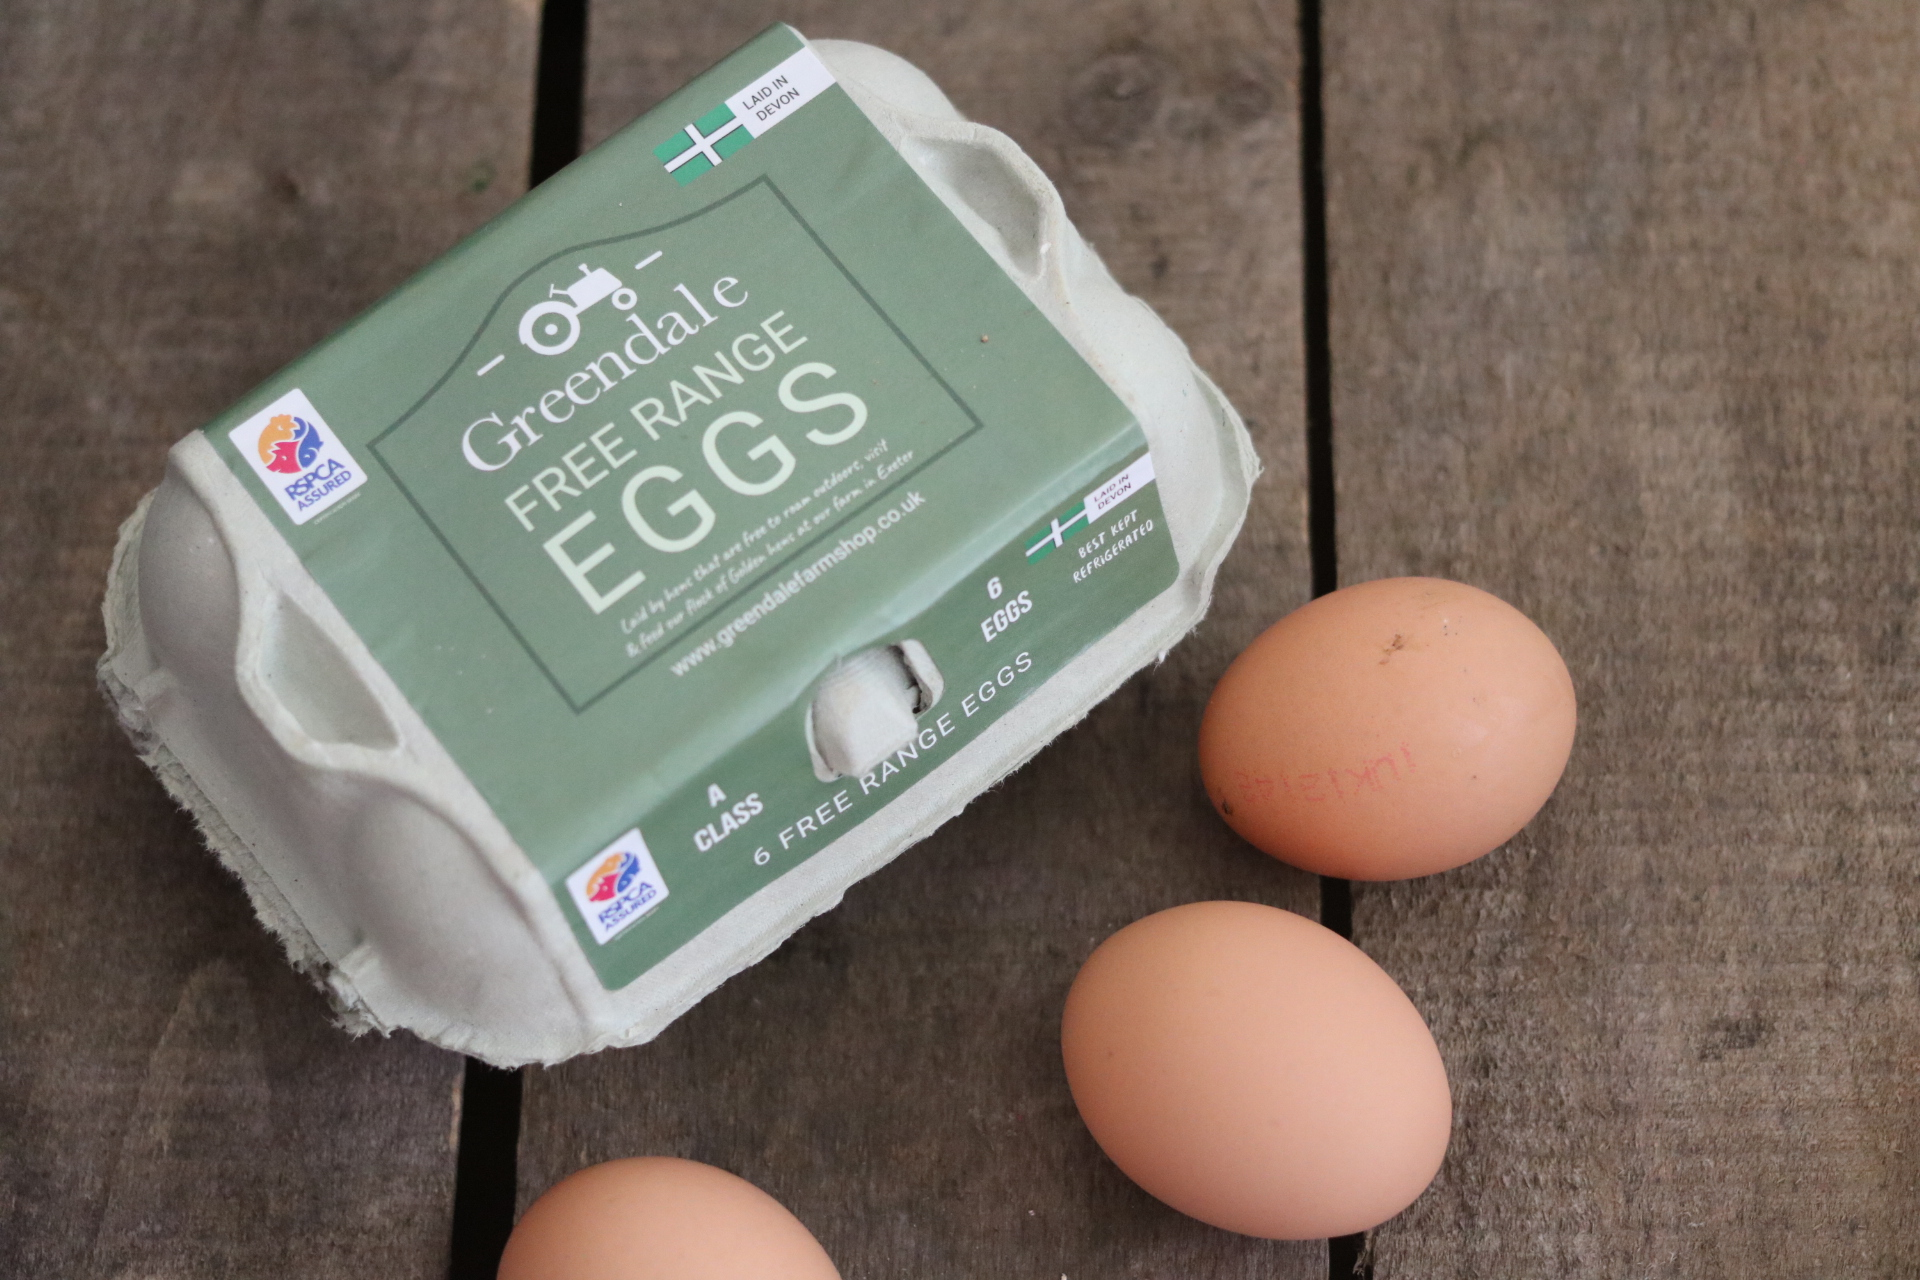 Greendale Free Range Eggs Medium